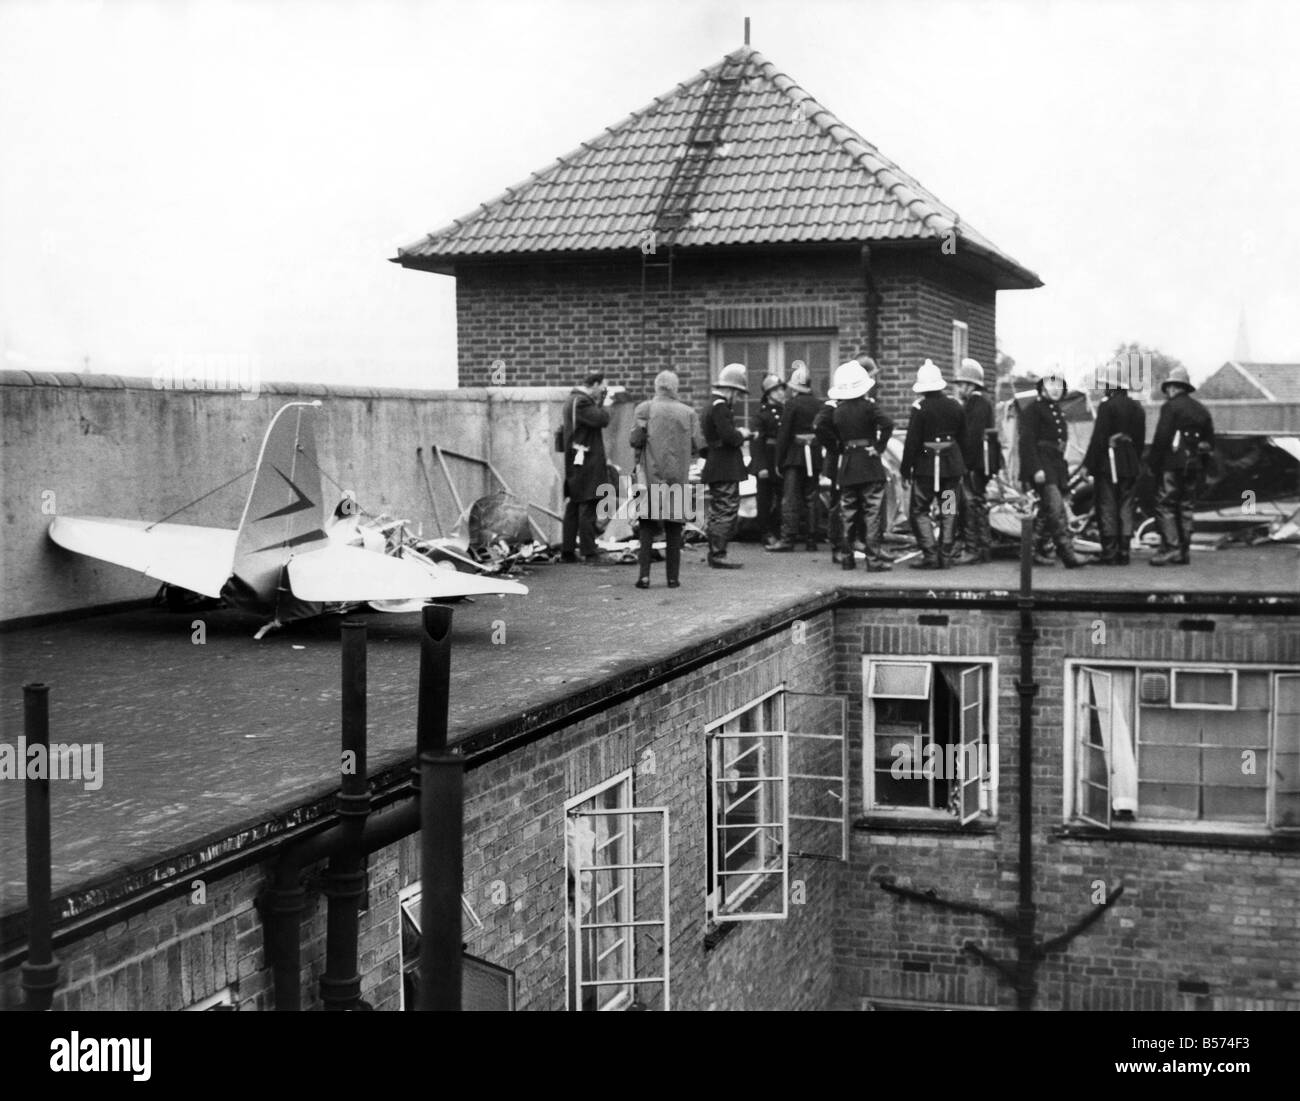 Accidents Air: Plane hits flats - two die. A plane crashed and exploded on Wednesday night (29.5.63) on the roof - Stock Image